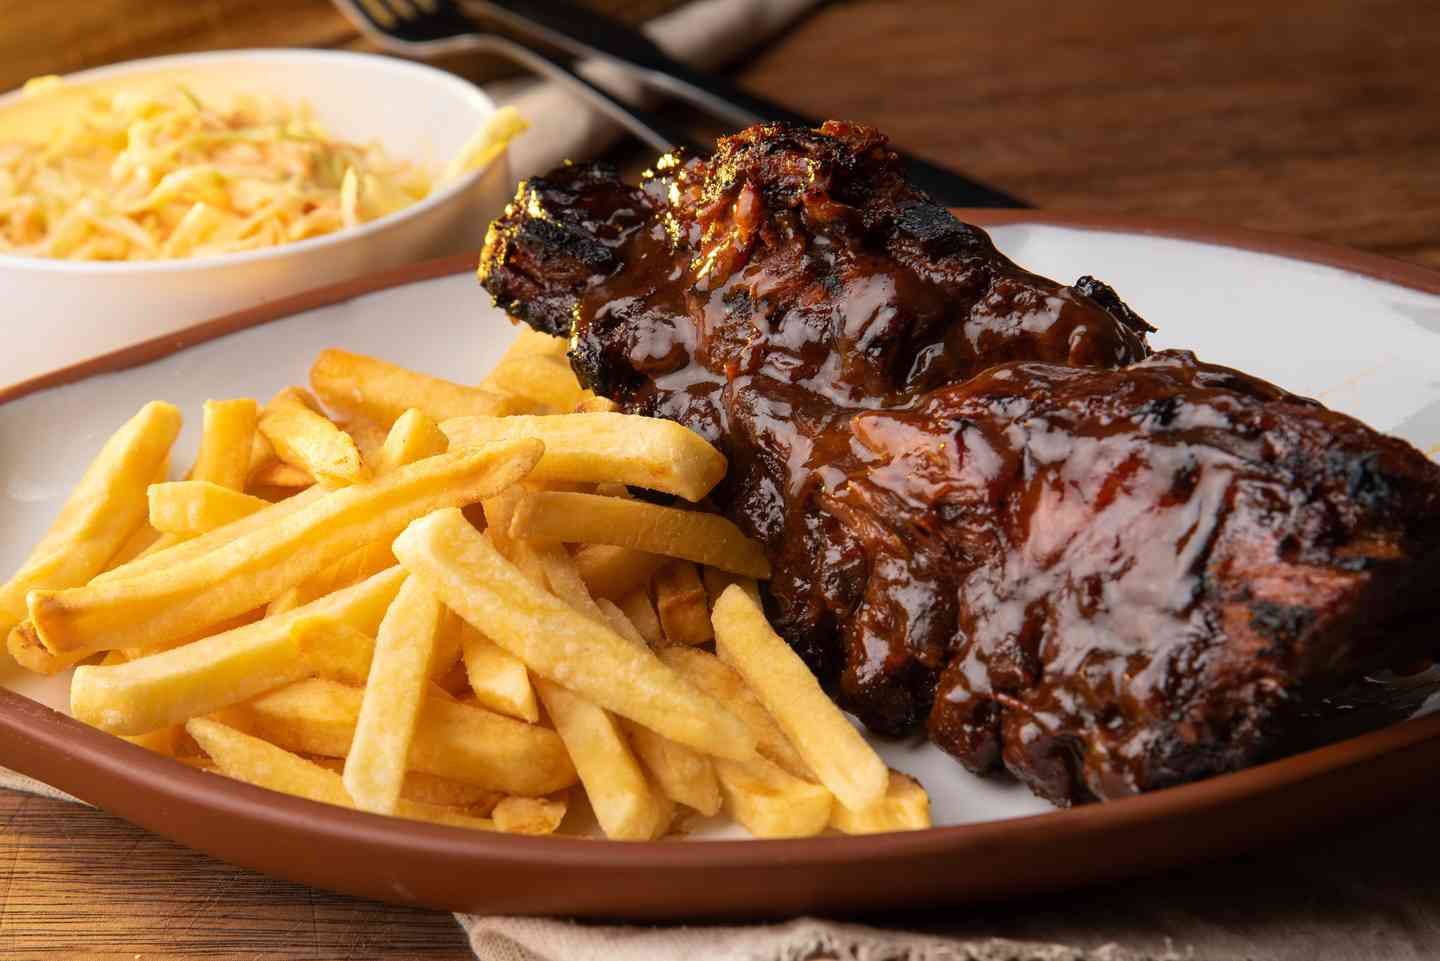 spare rib and fries